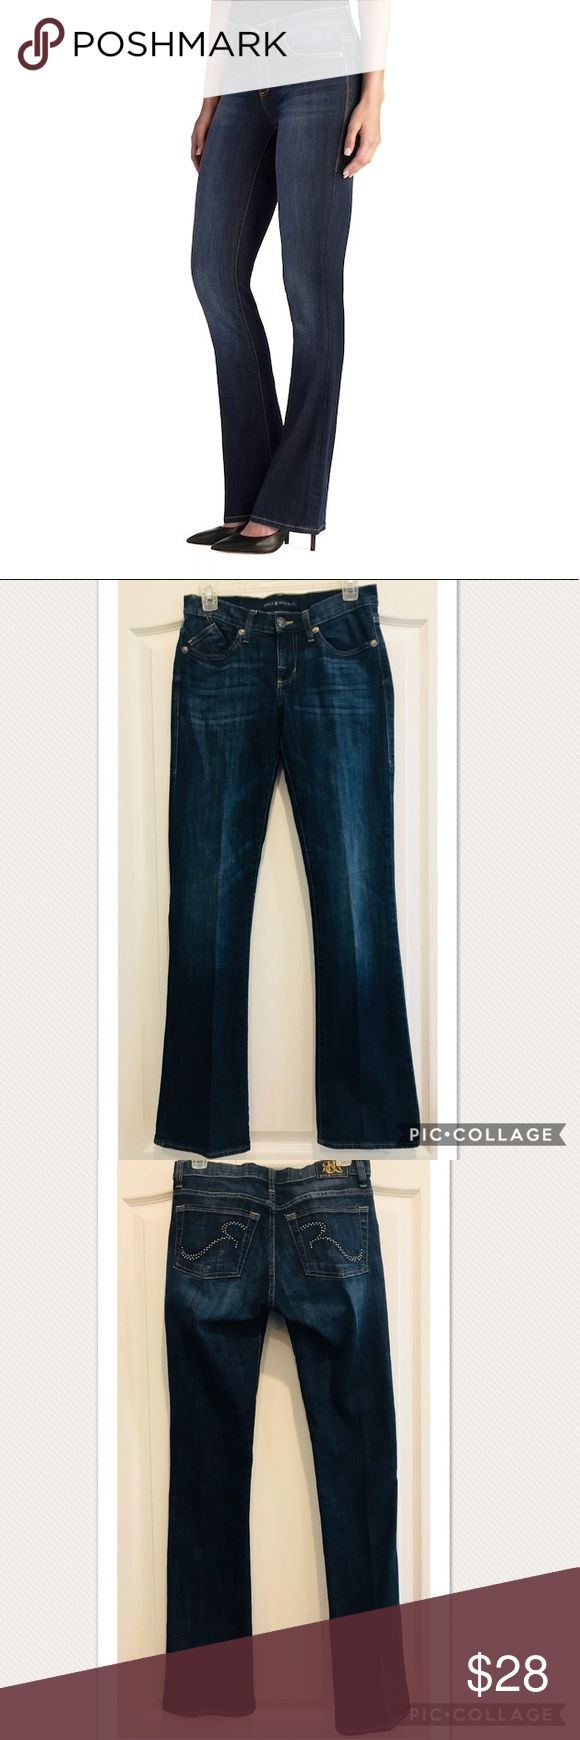 """Rock & Republic """"Kasandra"""" Boot Cut Jeans (size 6) Excellent, Like NEW Condition!!!  """"Kasandra"""" Boot Cut Jeans from Rock & Republic. Classic logo pocket in medium blue wash.  ▫️Faded Details ▫️5 pockets, Zipper fly ▫️Stretchy denim construction ▫️Midrise sits above hip ▫️Bootcut flares slightly at knee   **size 8 also available**  98% cotton, 2% spandex. Machine wash cold.   Measurements are available request.   Smoke-free home. Rock & Republic Jeans Boot Cut"""